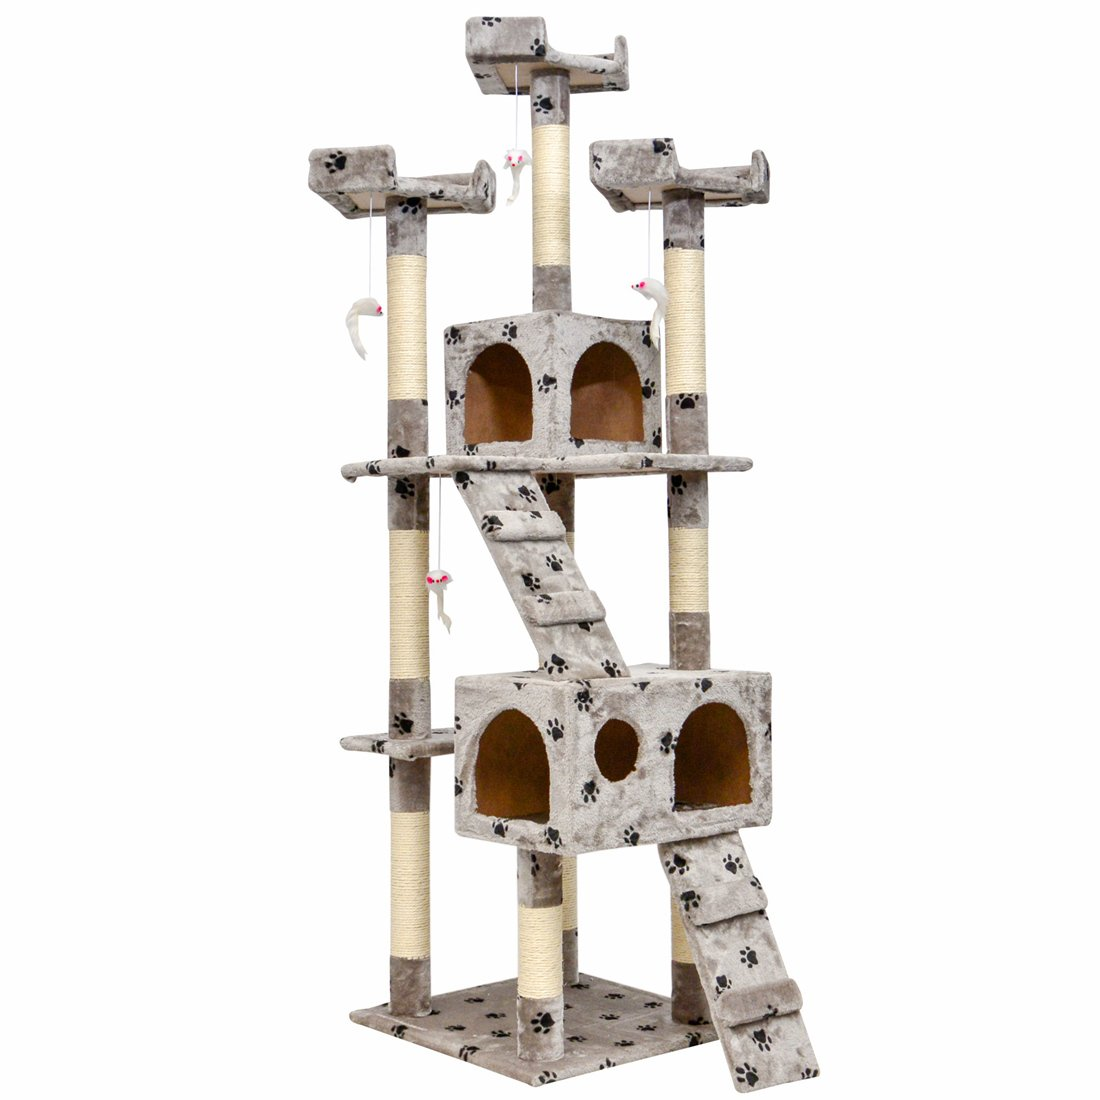 Good Life Cat Tree House Furniture Condo 66'' Tall Pet Play Tower Scratching Post Kitten Toy for Small to Medium Sized Cats Gray Spots Color PET432 by GOOD LIFE USA